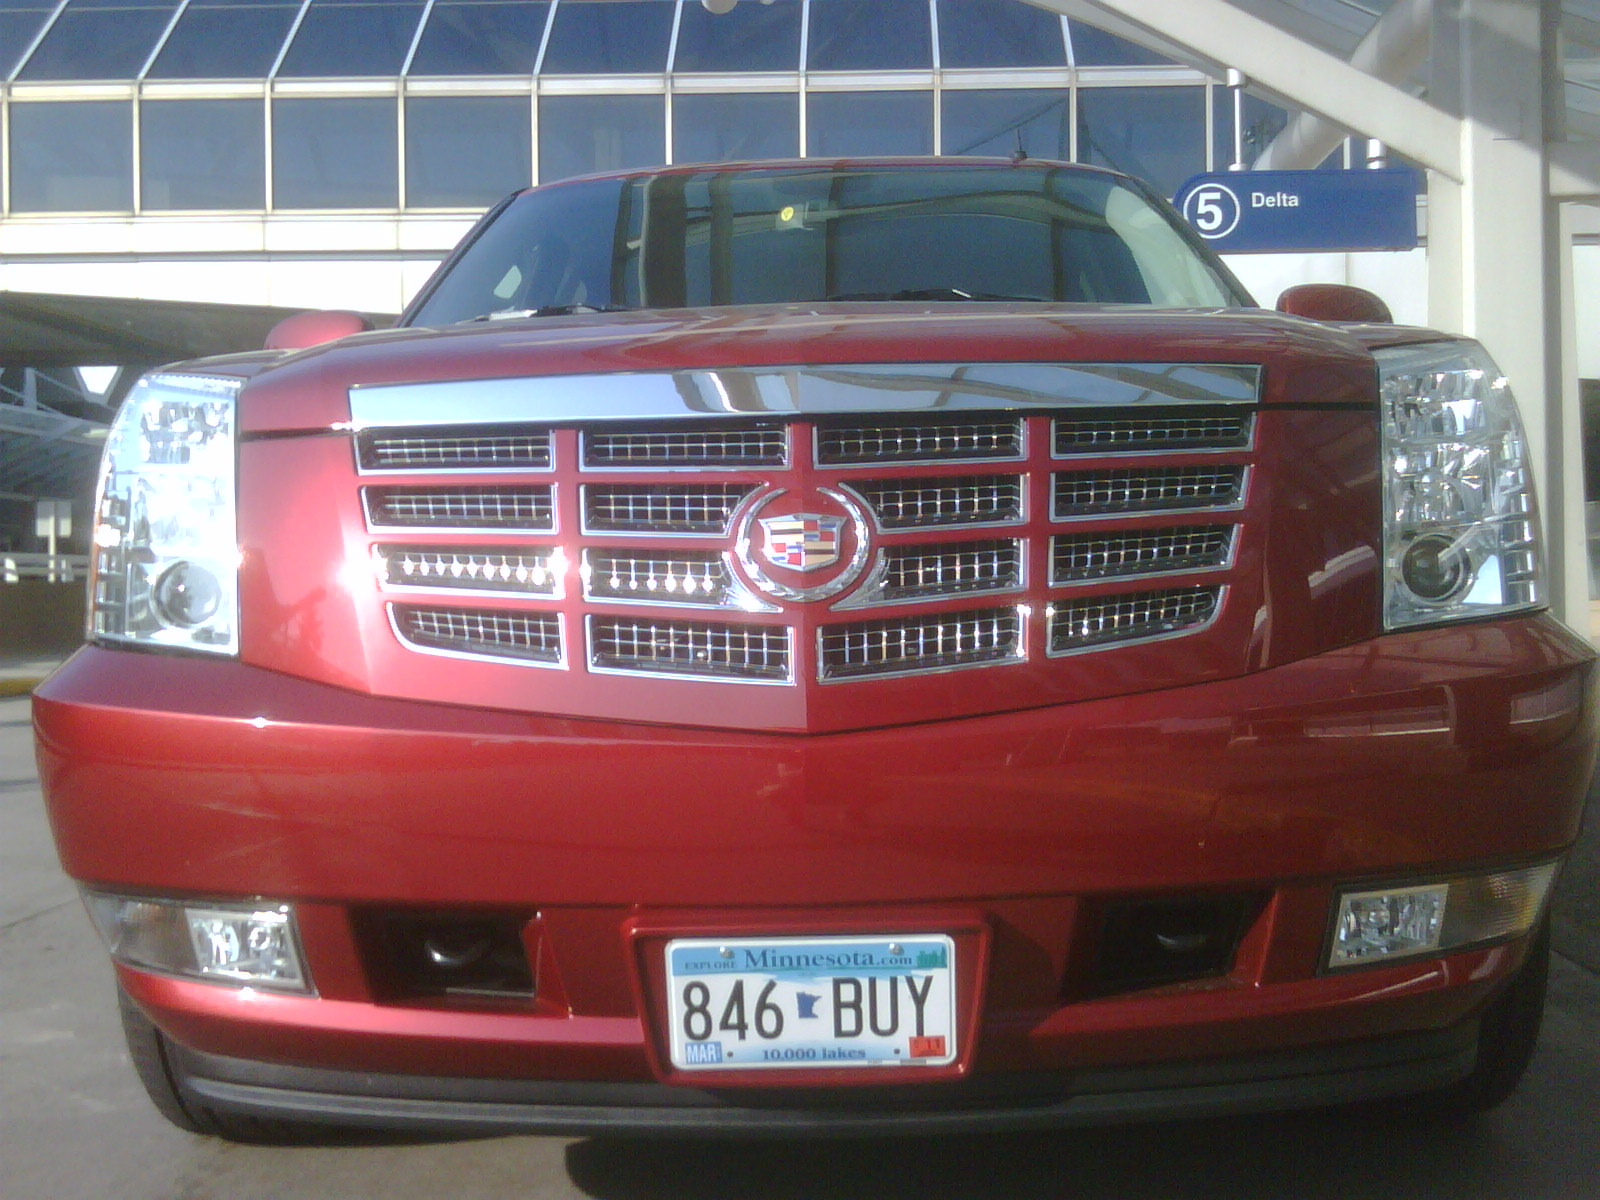 Our ride while stuck in Minneapolis: 6.2l V8 Escalade